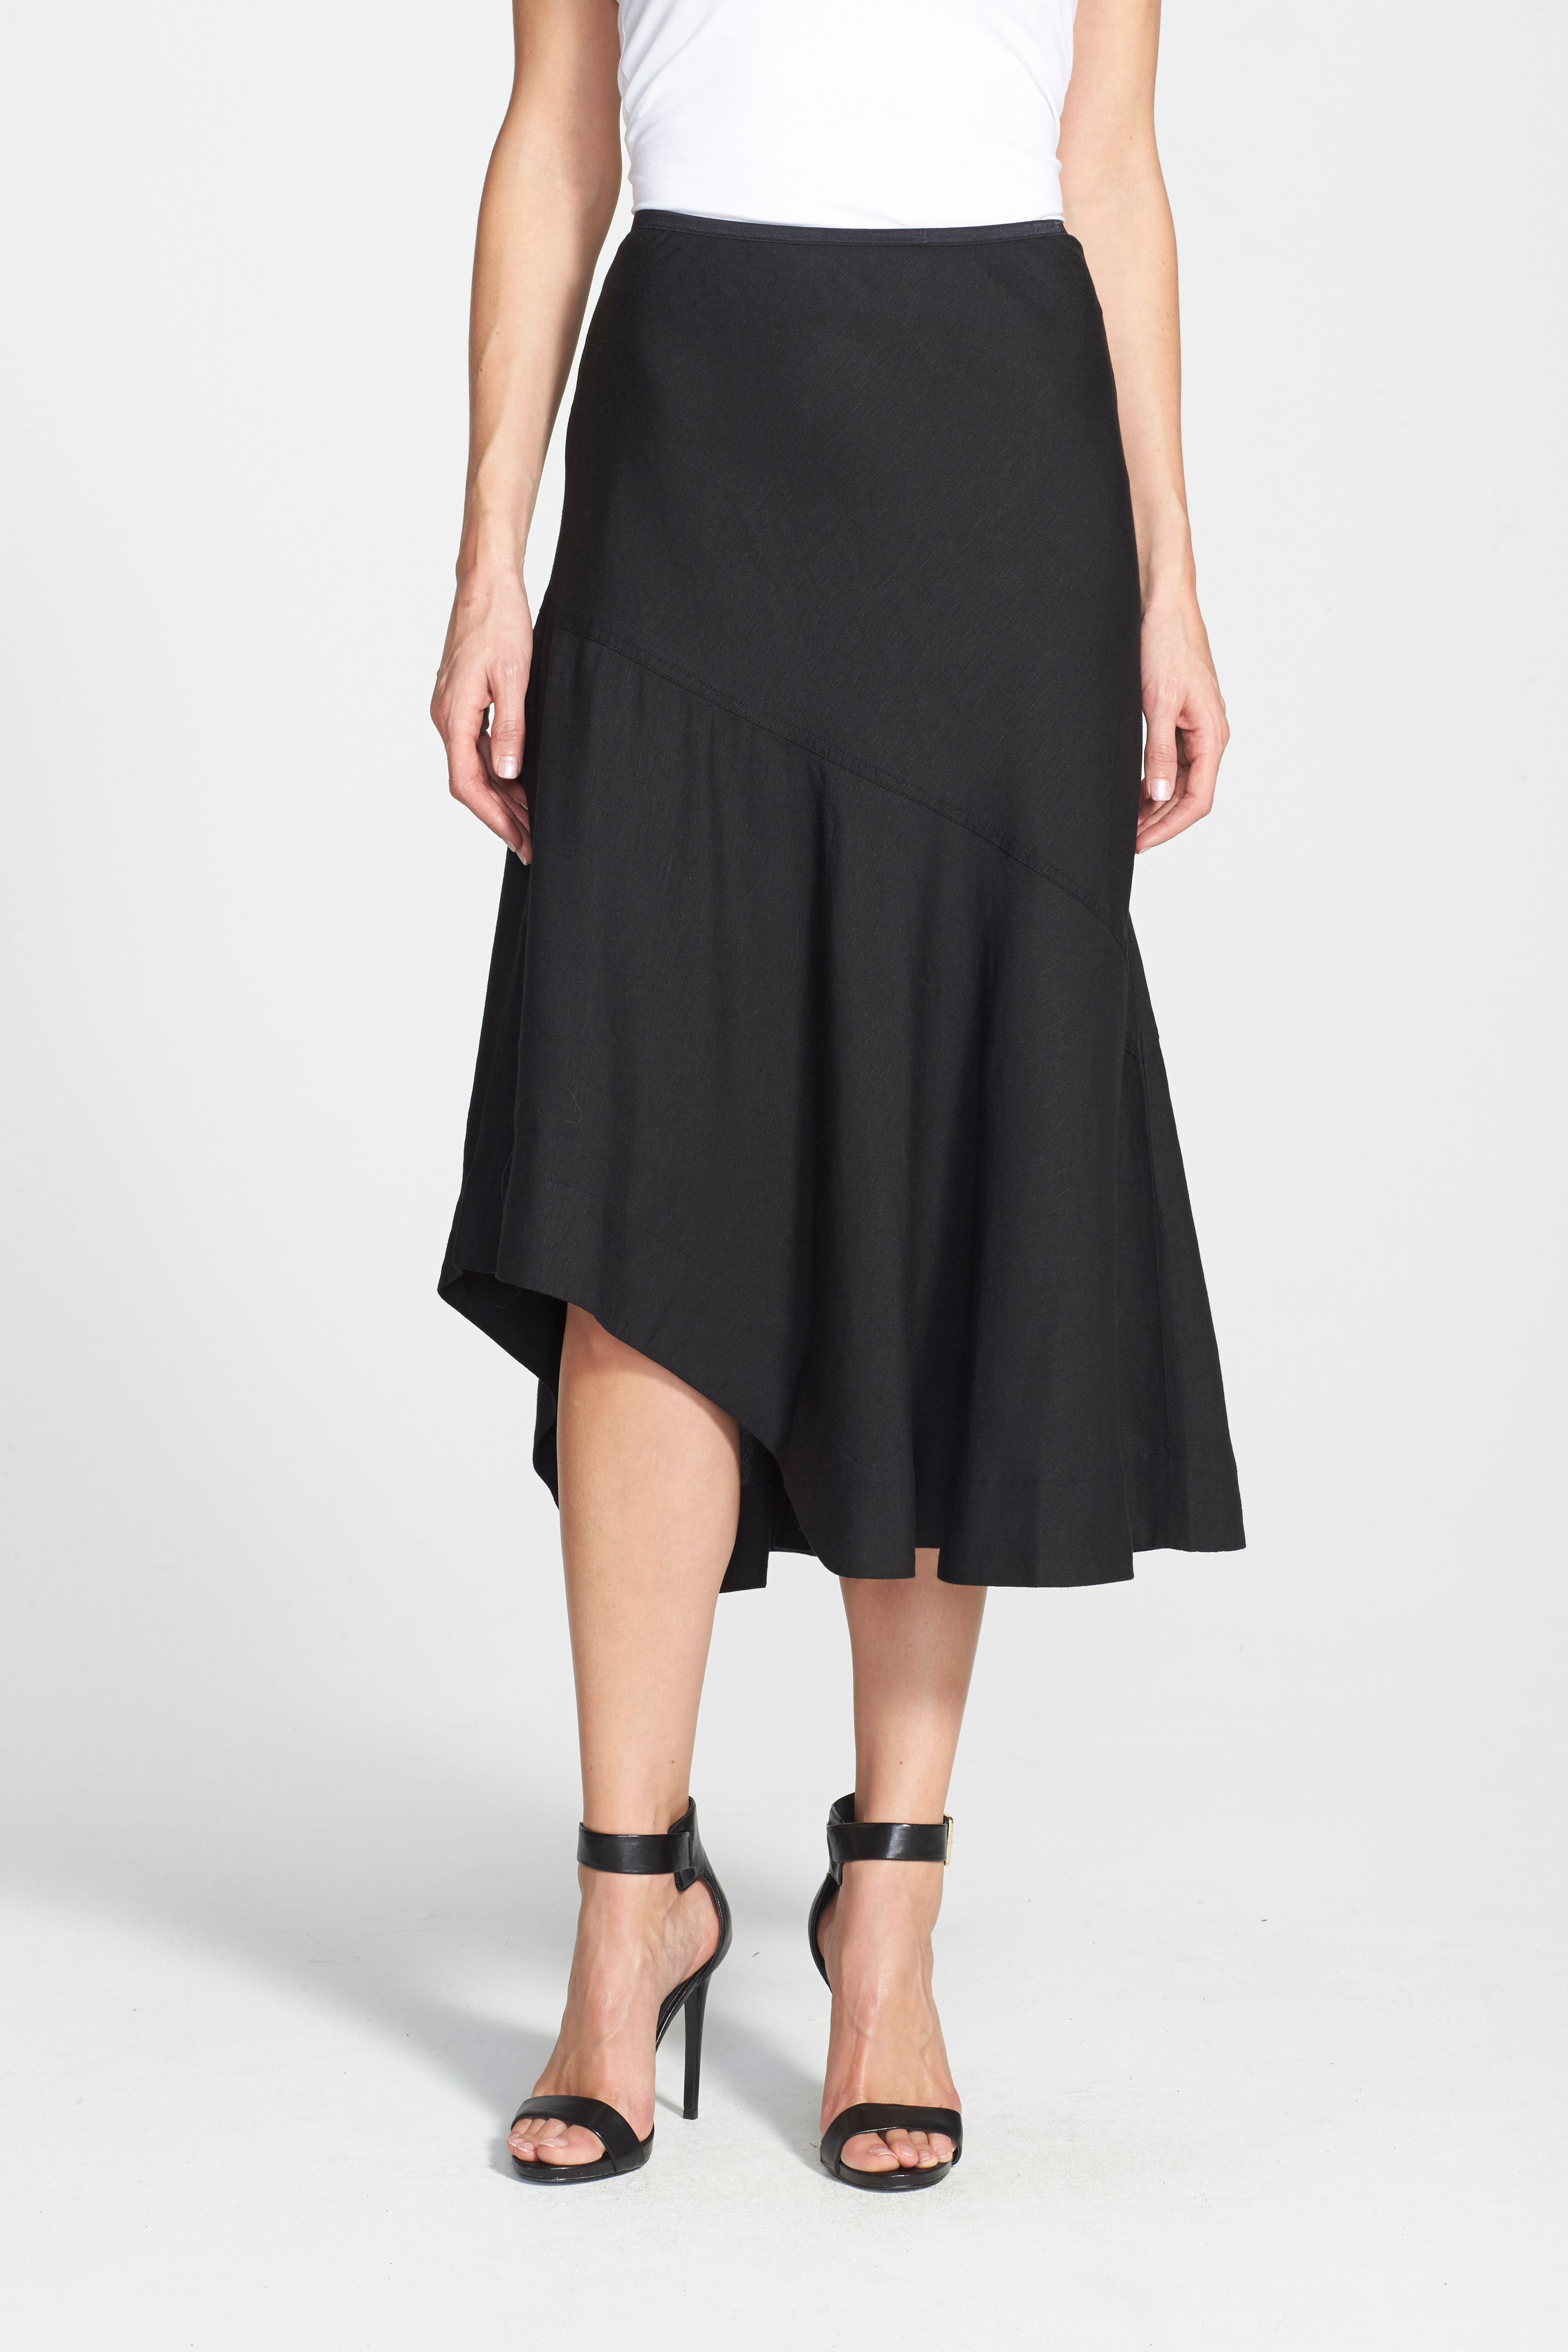 NIC+ZOE, 'The Long Engagement' Midi Skirt, Alternate thumbnail 2, color, 004